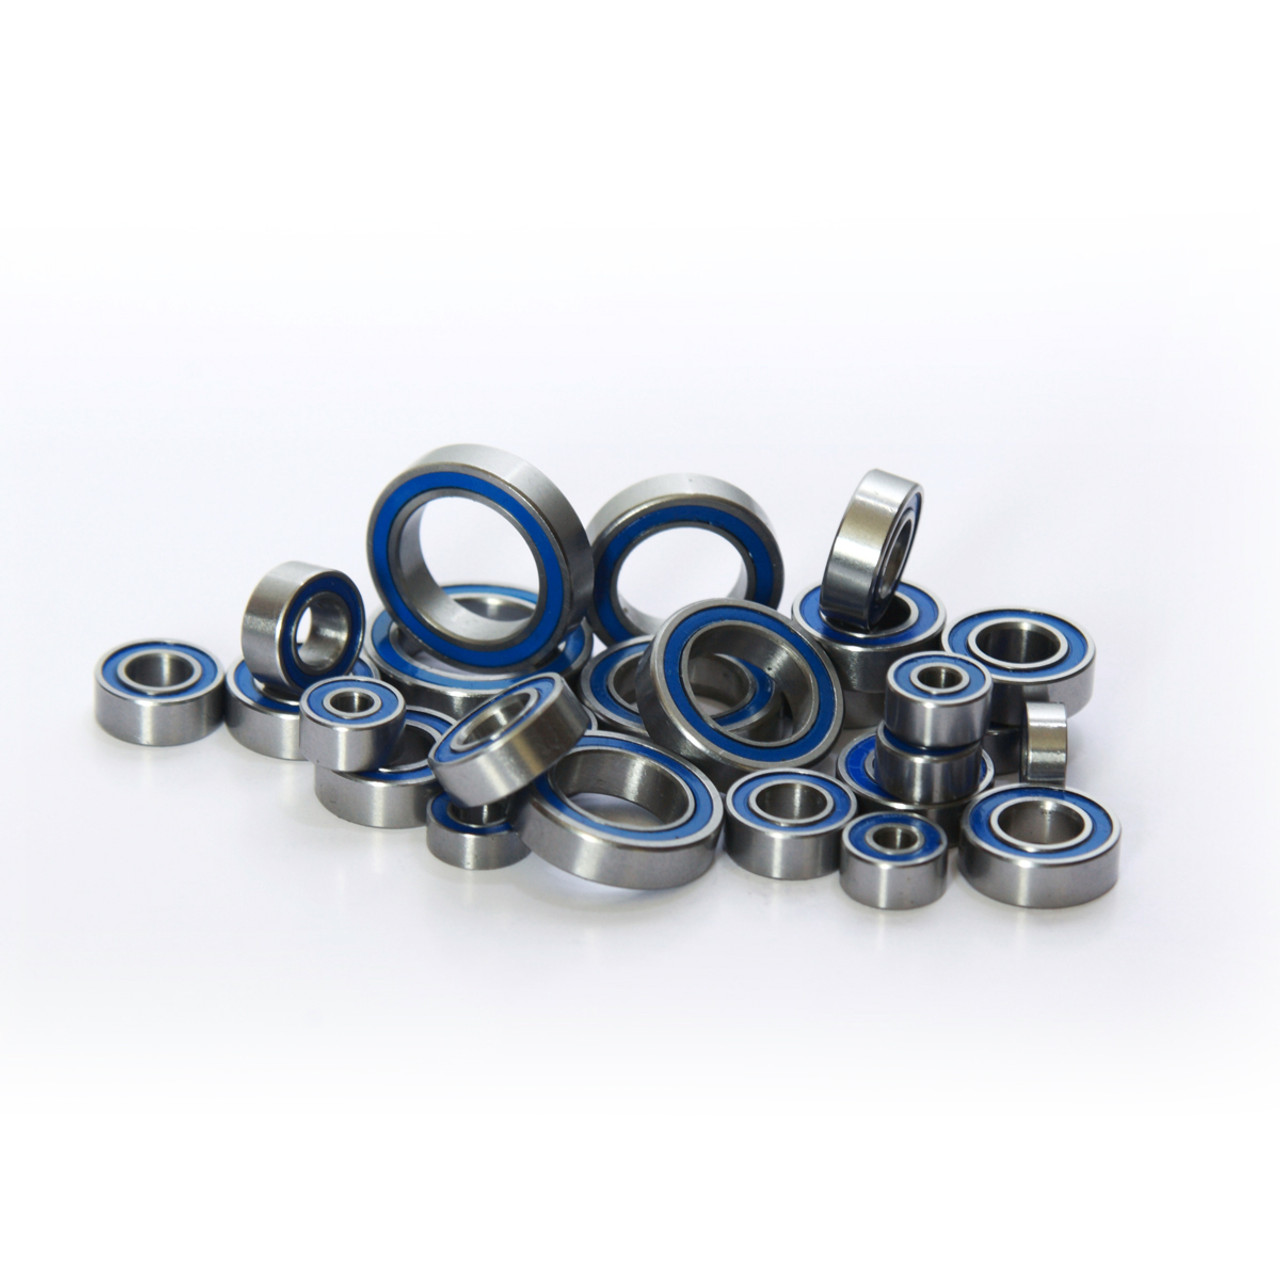 ASSOCIATED SC10 4X4 FULL BEARING KIT